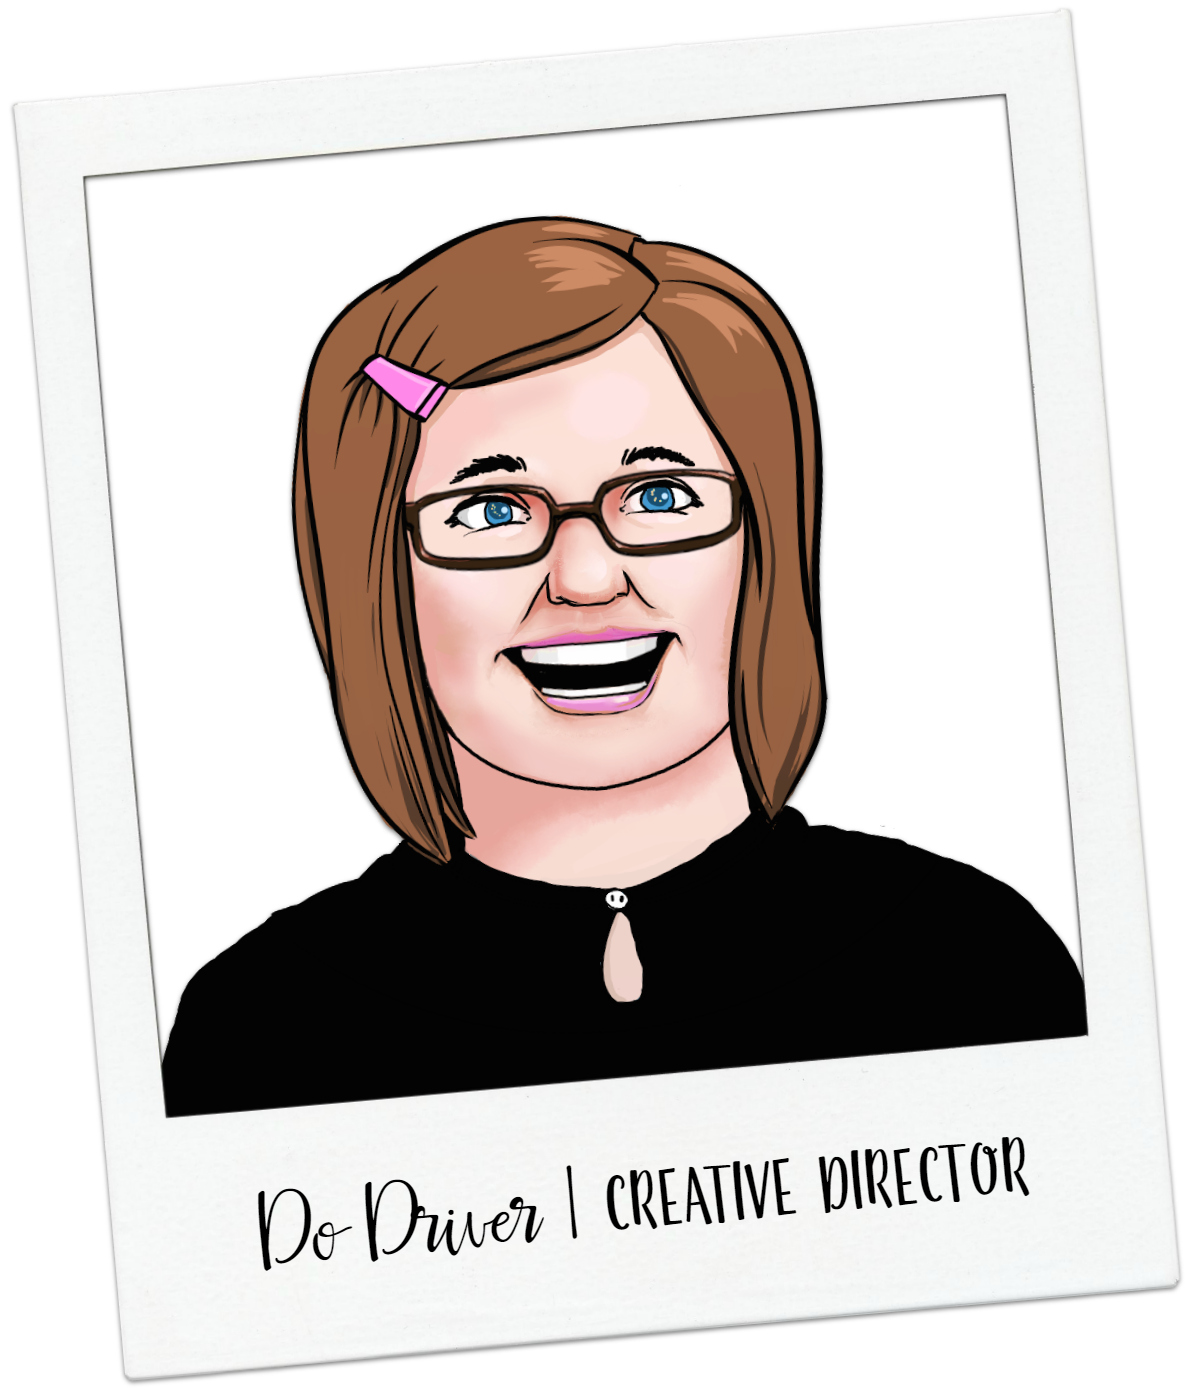 Do Driver | Piggy Bank Parties' Creative Director